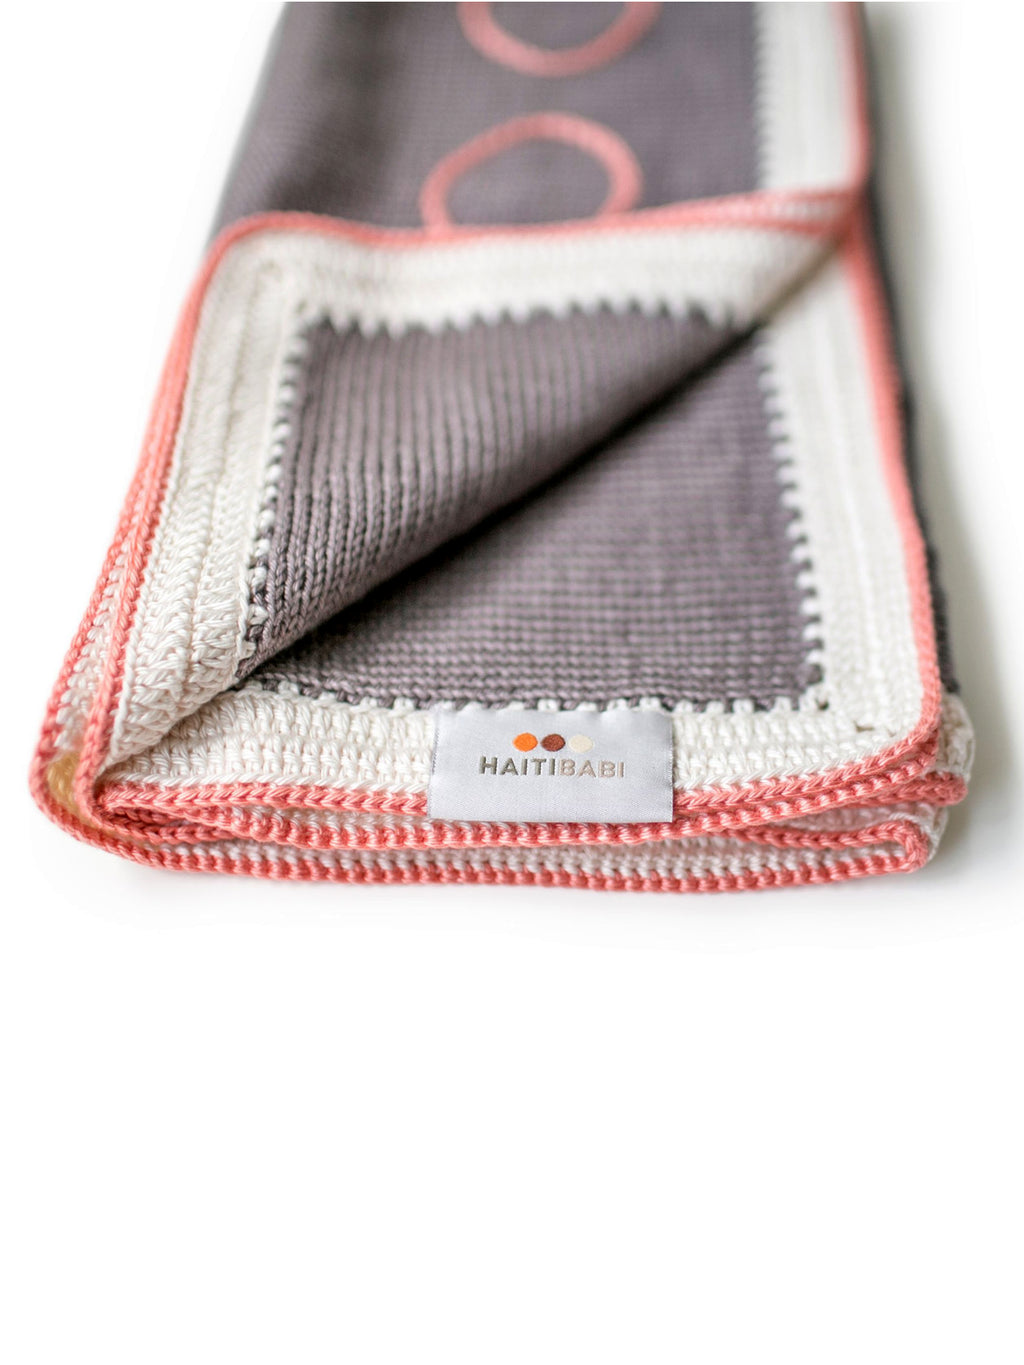 Hand-knit Pima Cotton Baby Blanket (Mauve)